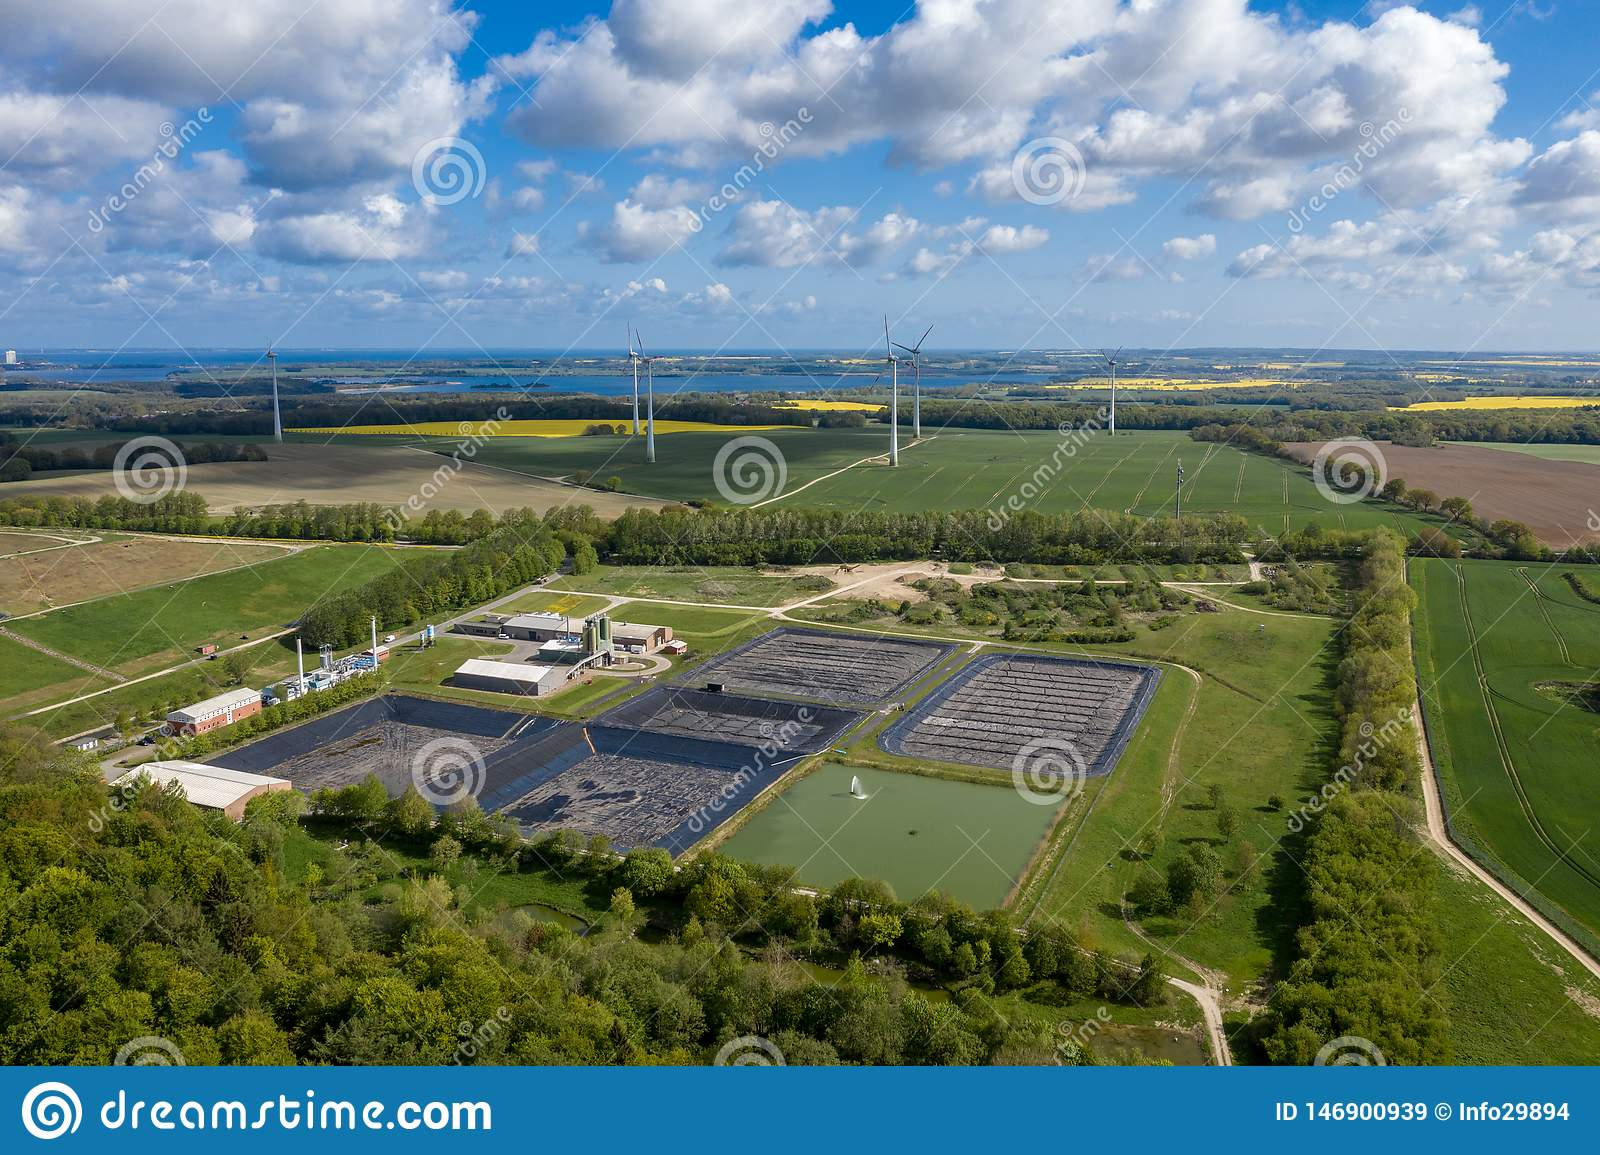 Europe´s largest toxic waste landfill Ihlenberg in the north of Germany